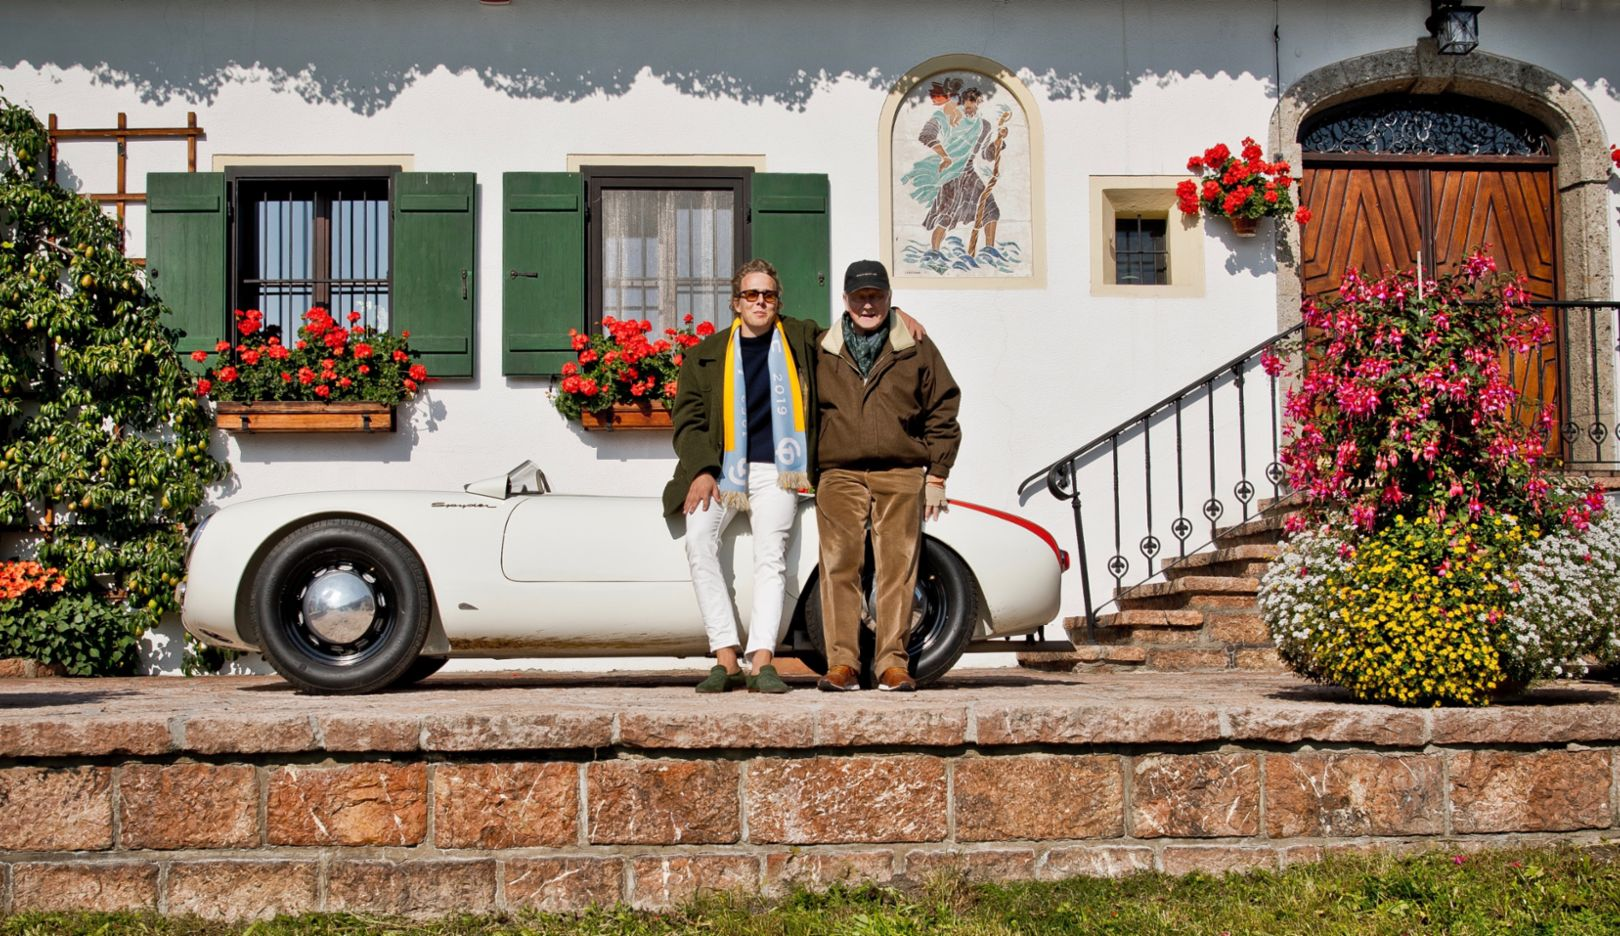 Unity of the generations: Ferdinand and his father Wolfgang Porsche after the drive, arm in arm in front of Schüttgut, the Porsche family's haven of tranquility.